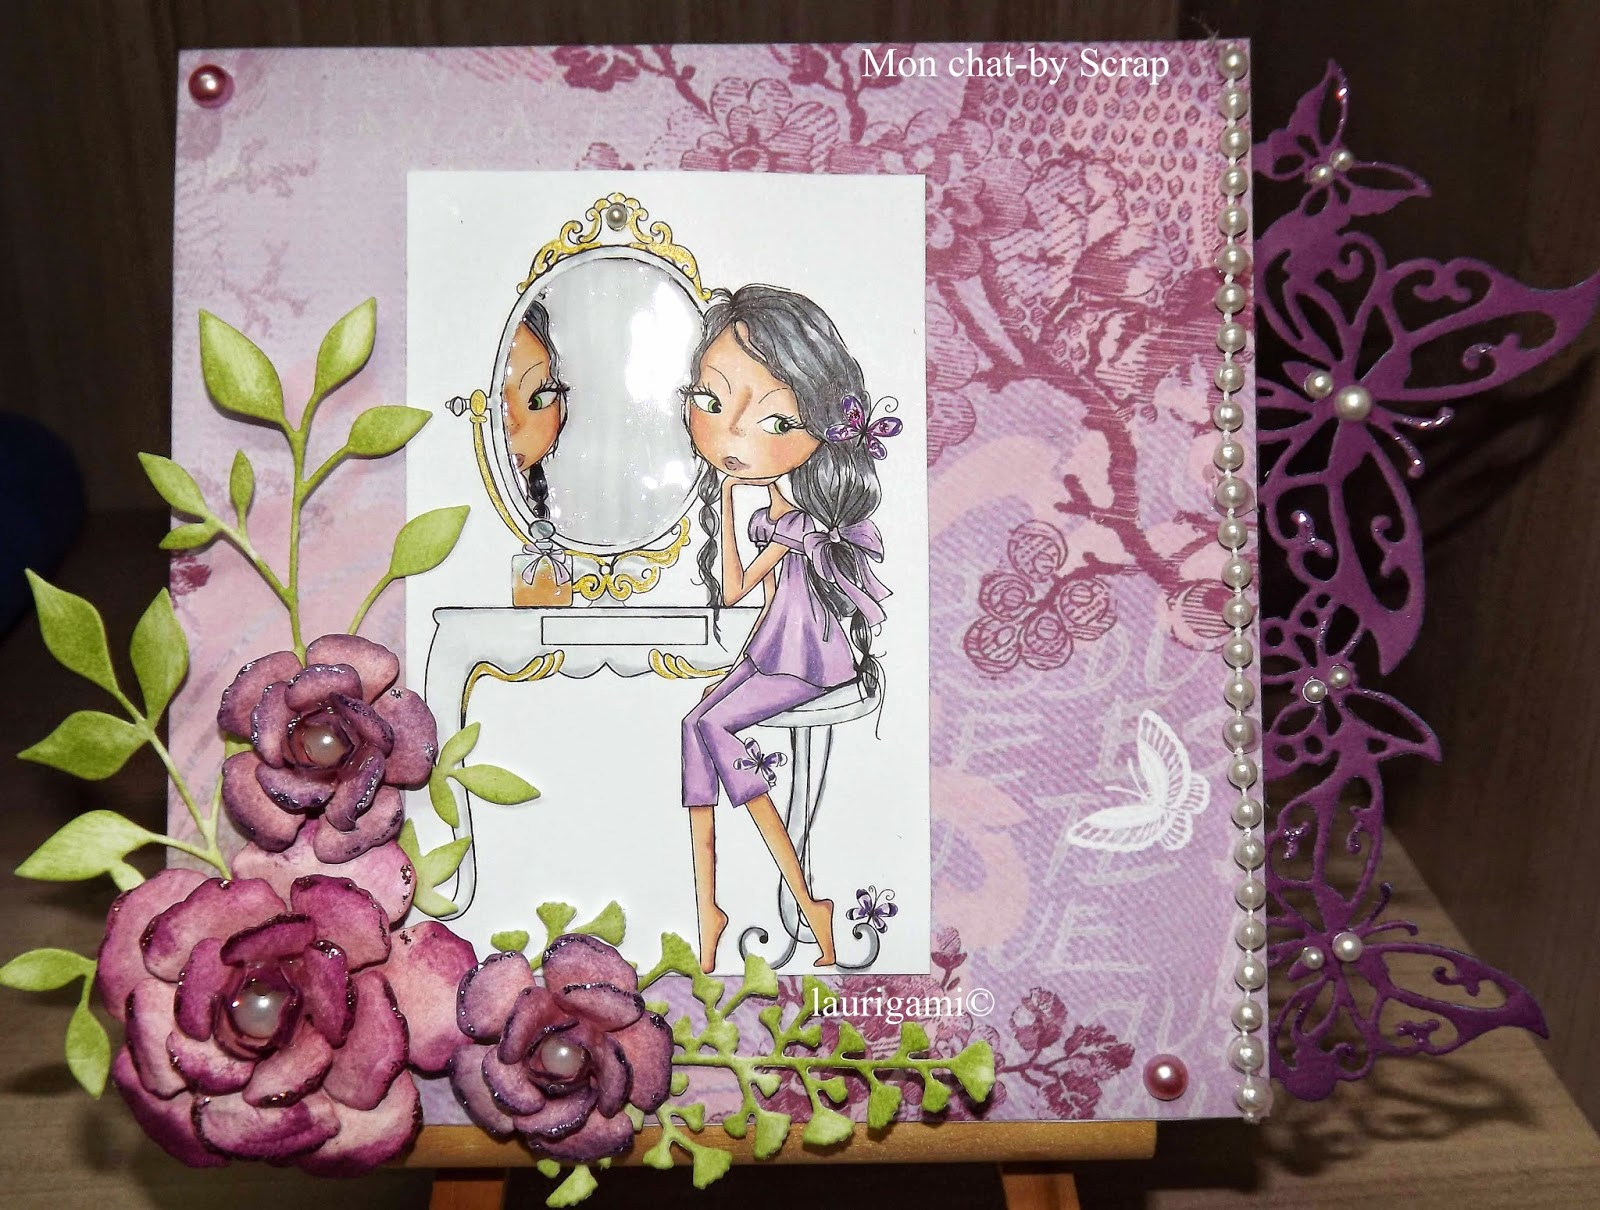 Mon chat by scrap carte dt hobbycutz for Miroir reflet sens 50